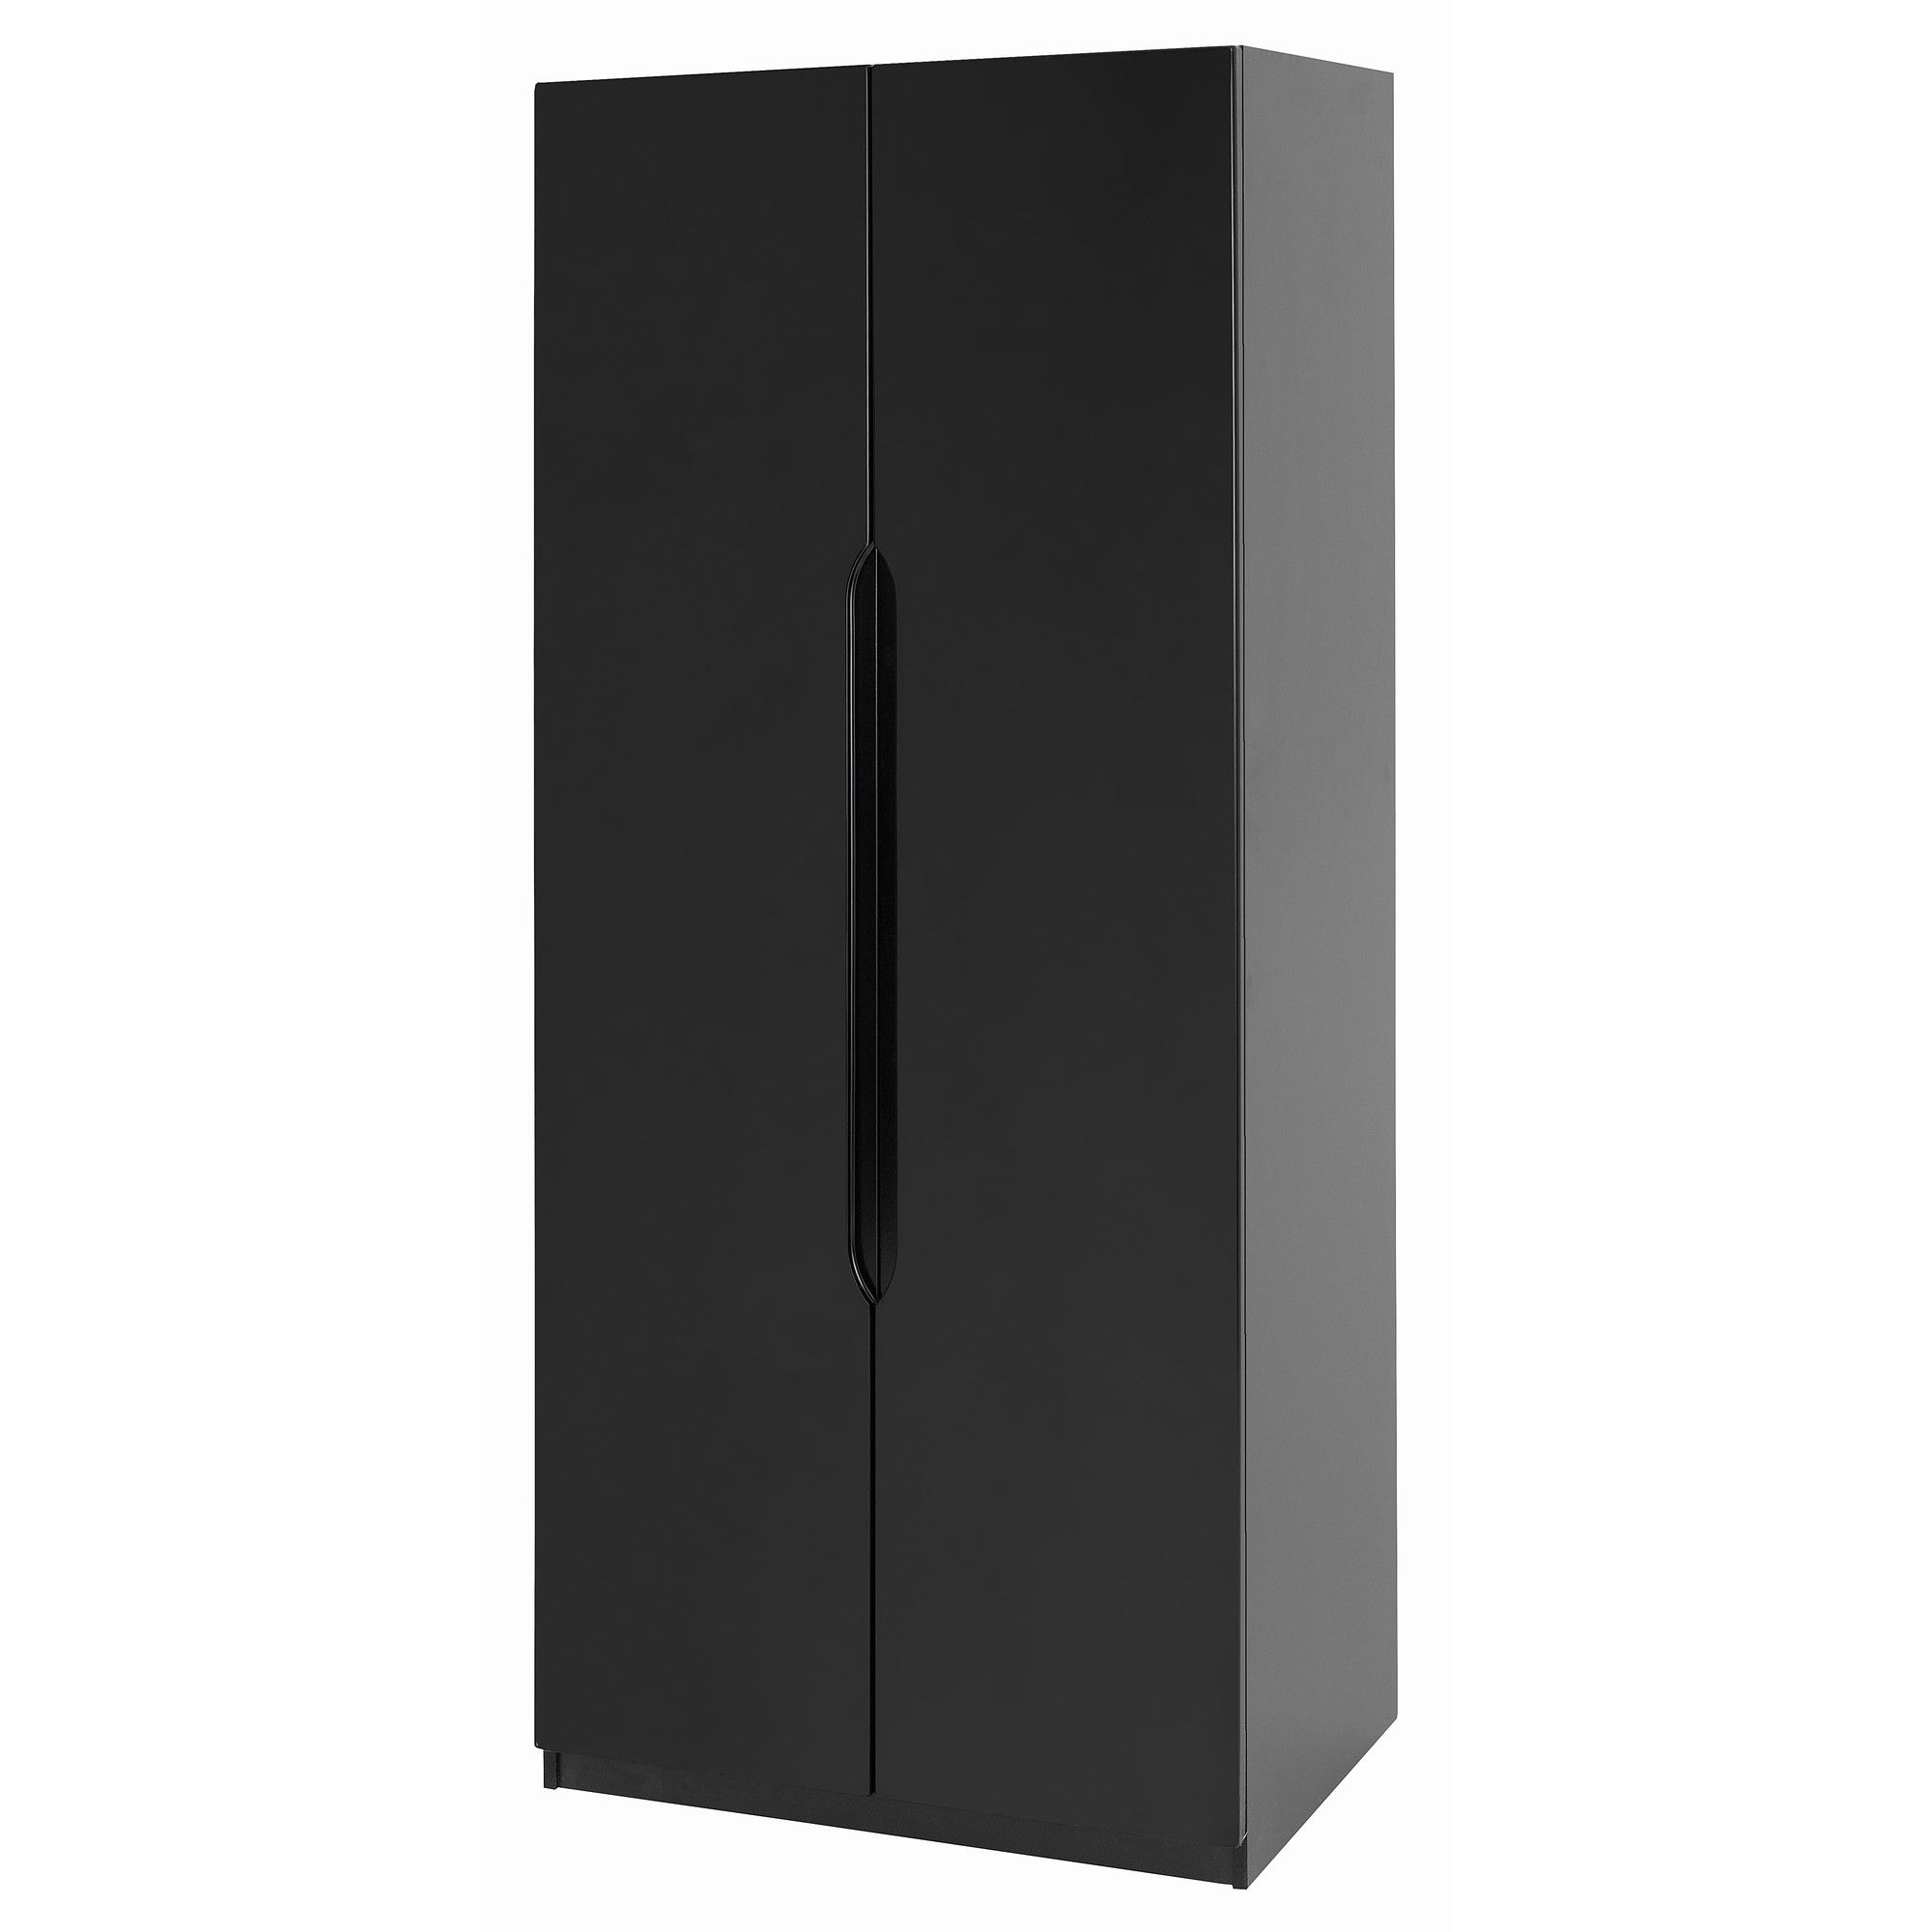 Alto Furniture Visualise Orient Two Door Wardrobe in High Gloss Black at Tescos Direct